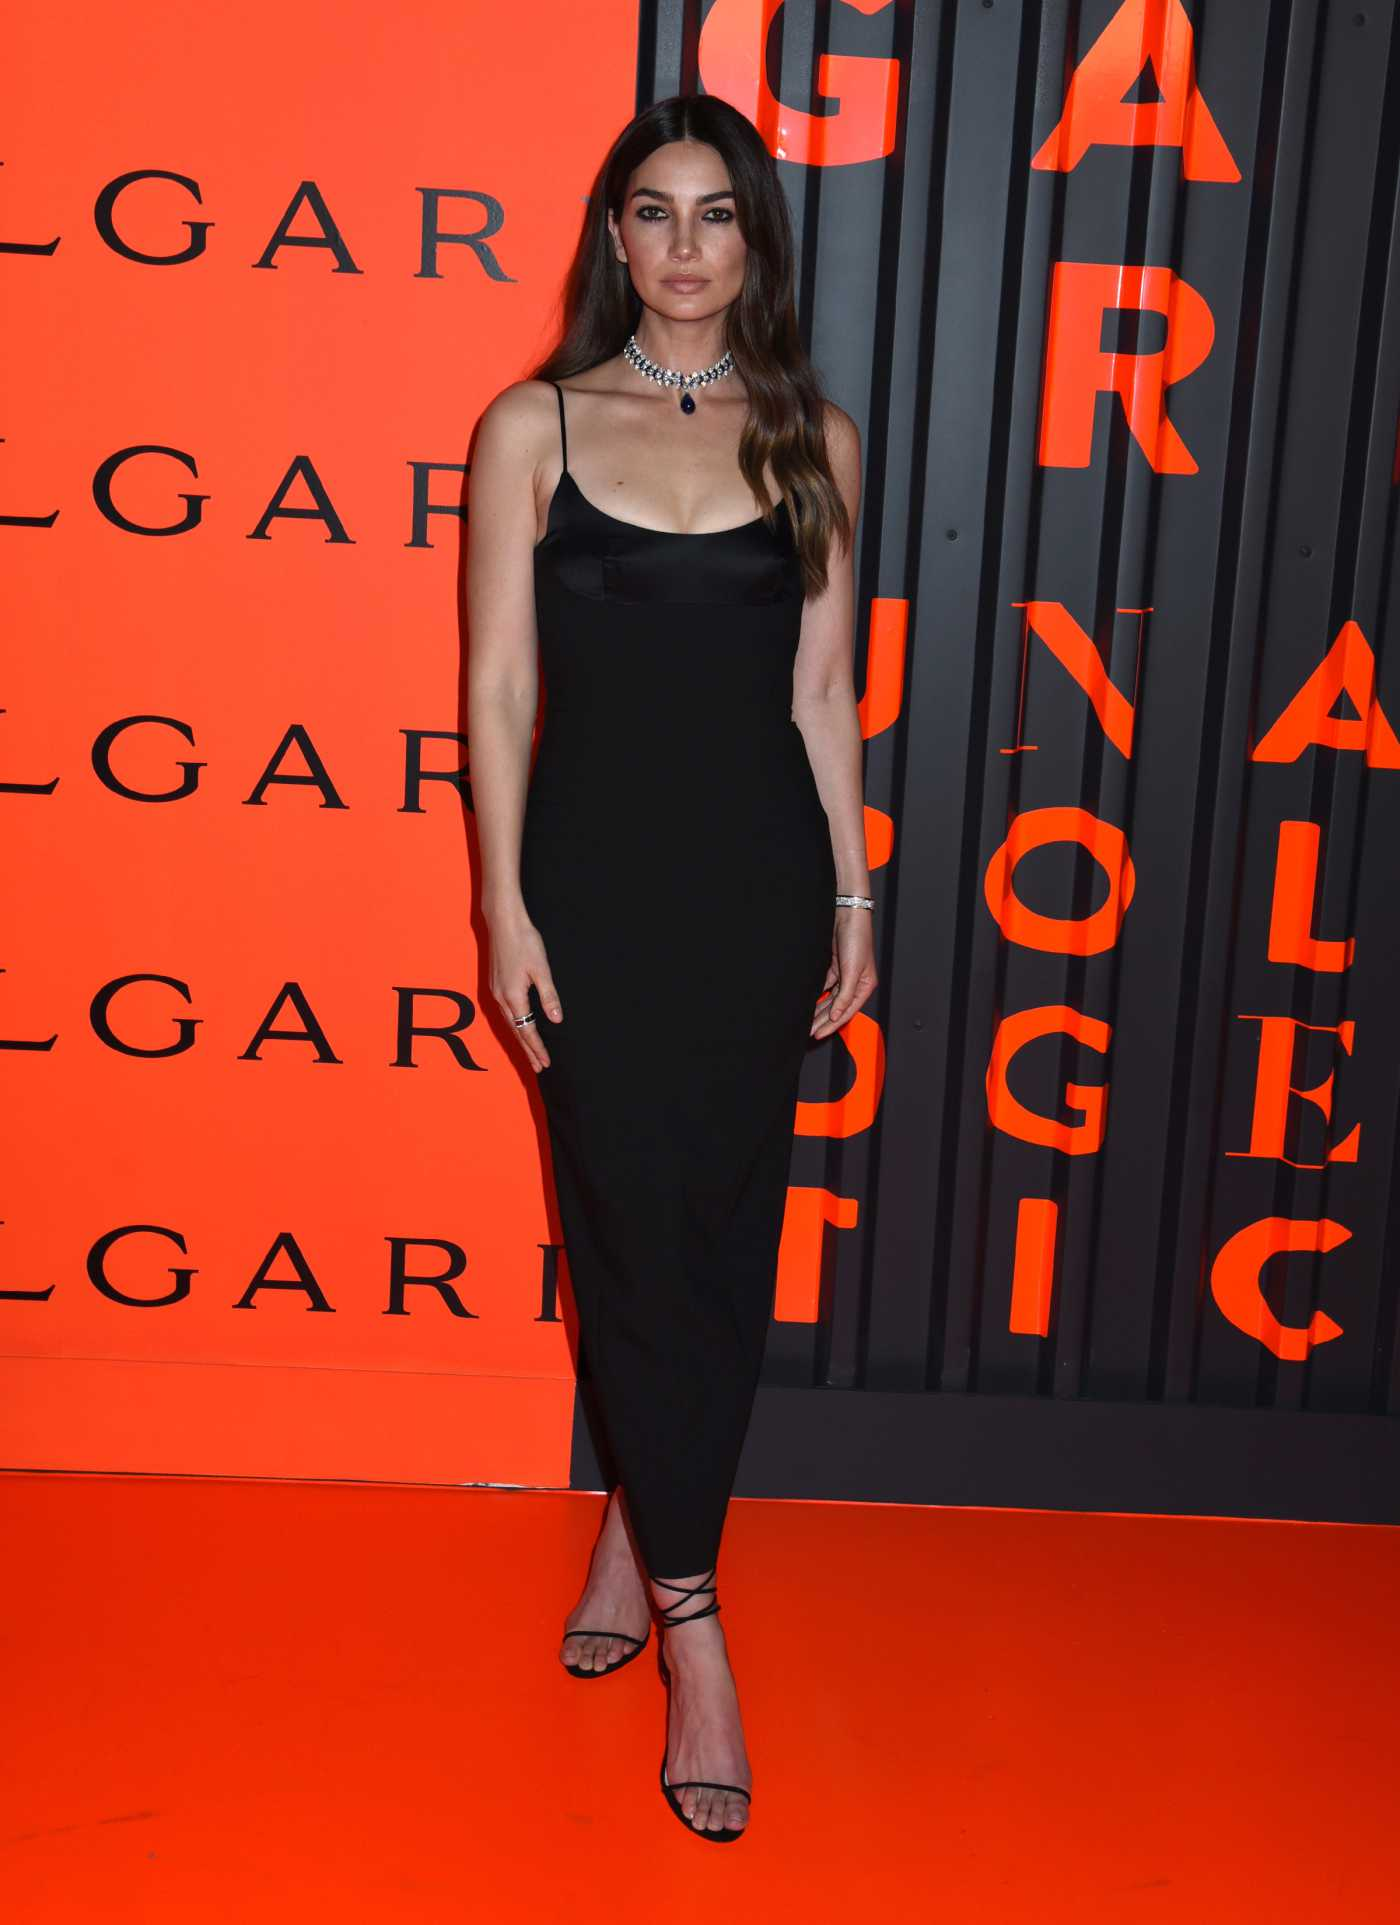 Lily Aldridge Attends the Bvlgari Celebrates B.zero1 Rock Collection in Brooklyn, New York 02/06/2020